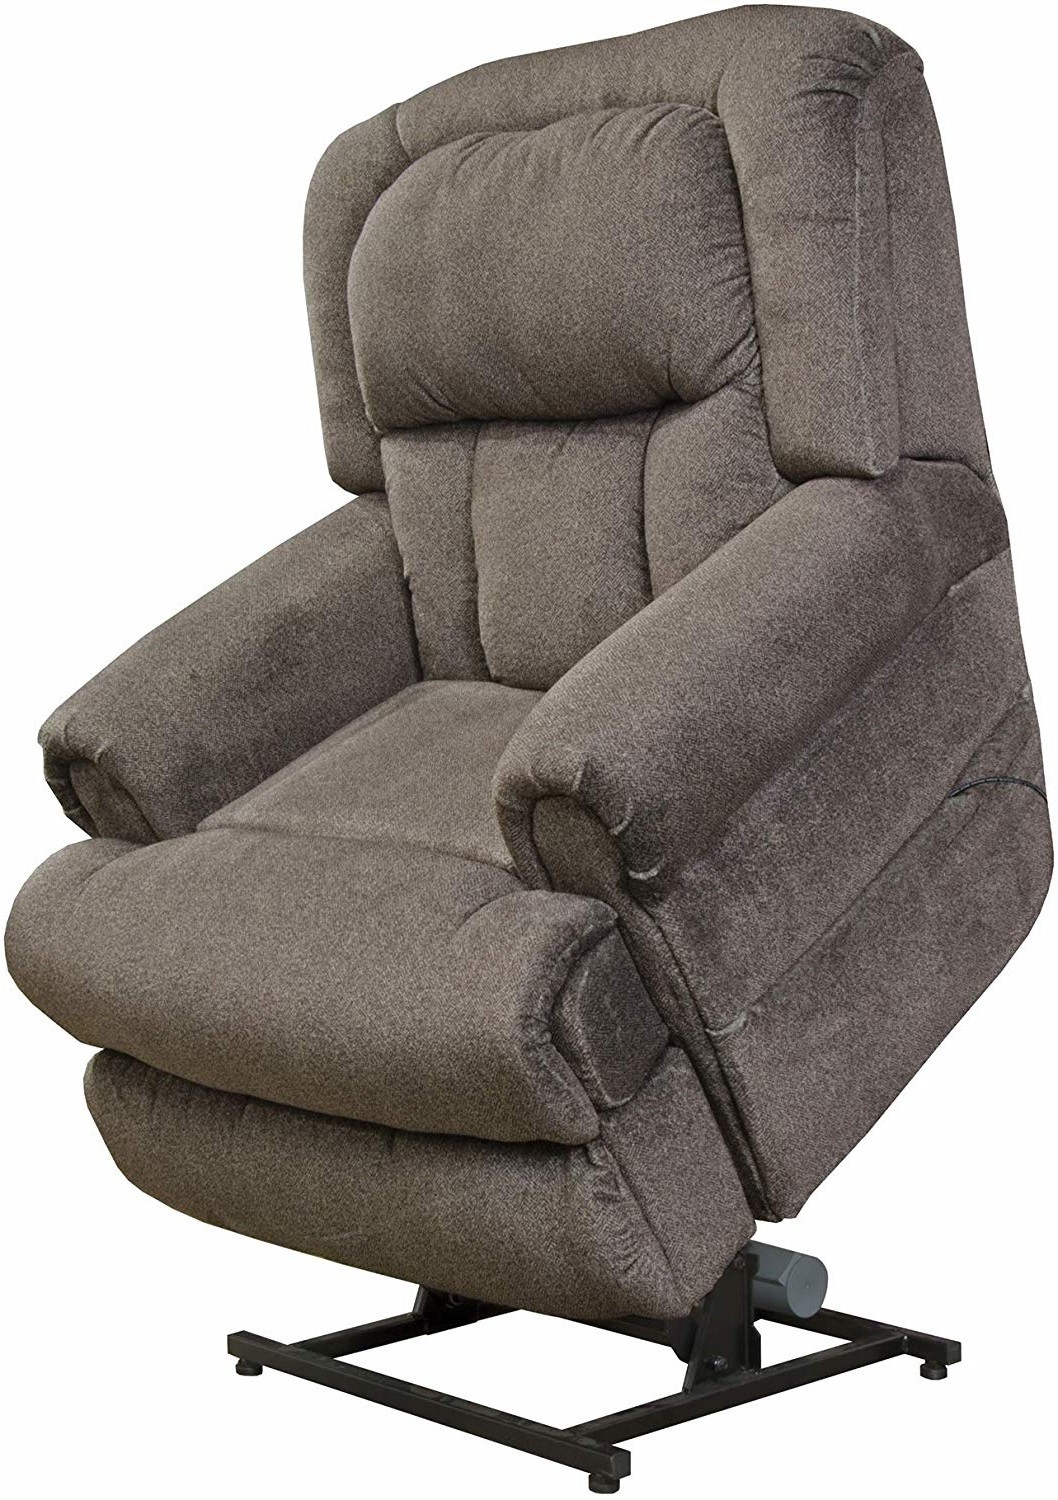 Catnapper Burns Recliner